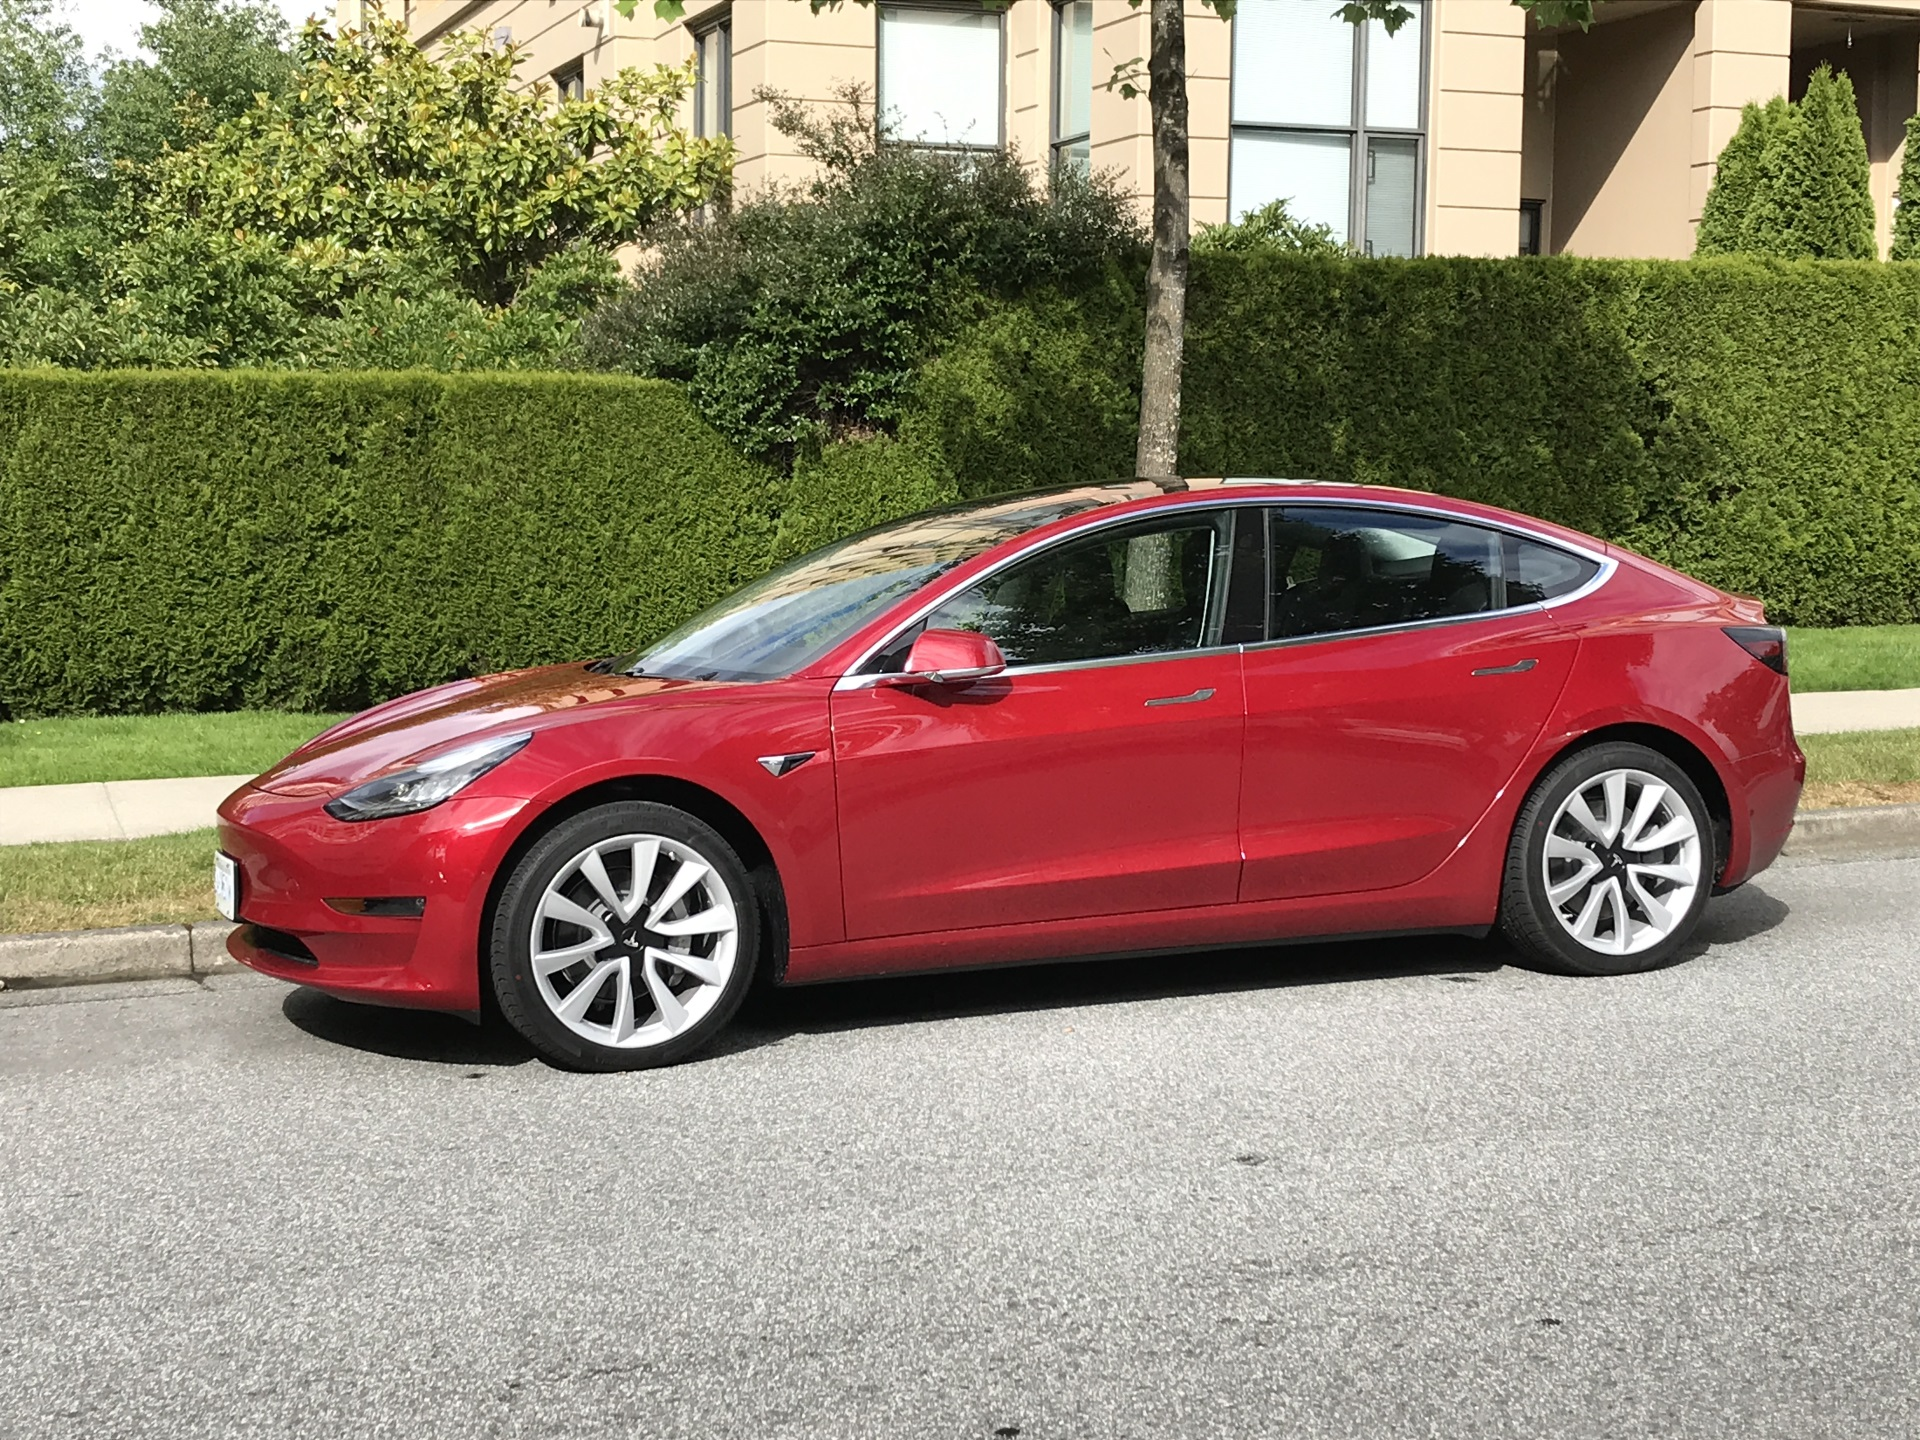 Tesla Model 3 Mid Range misses $35,000 target by $9,000 even